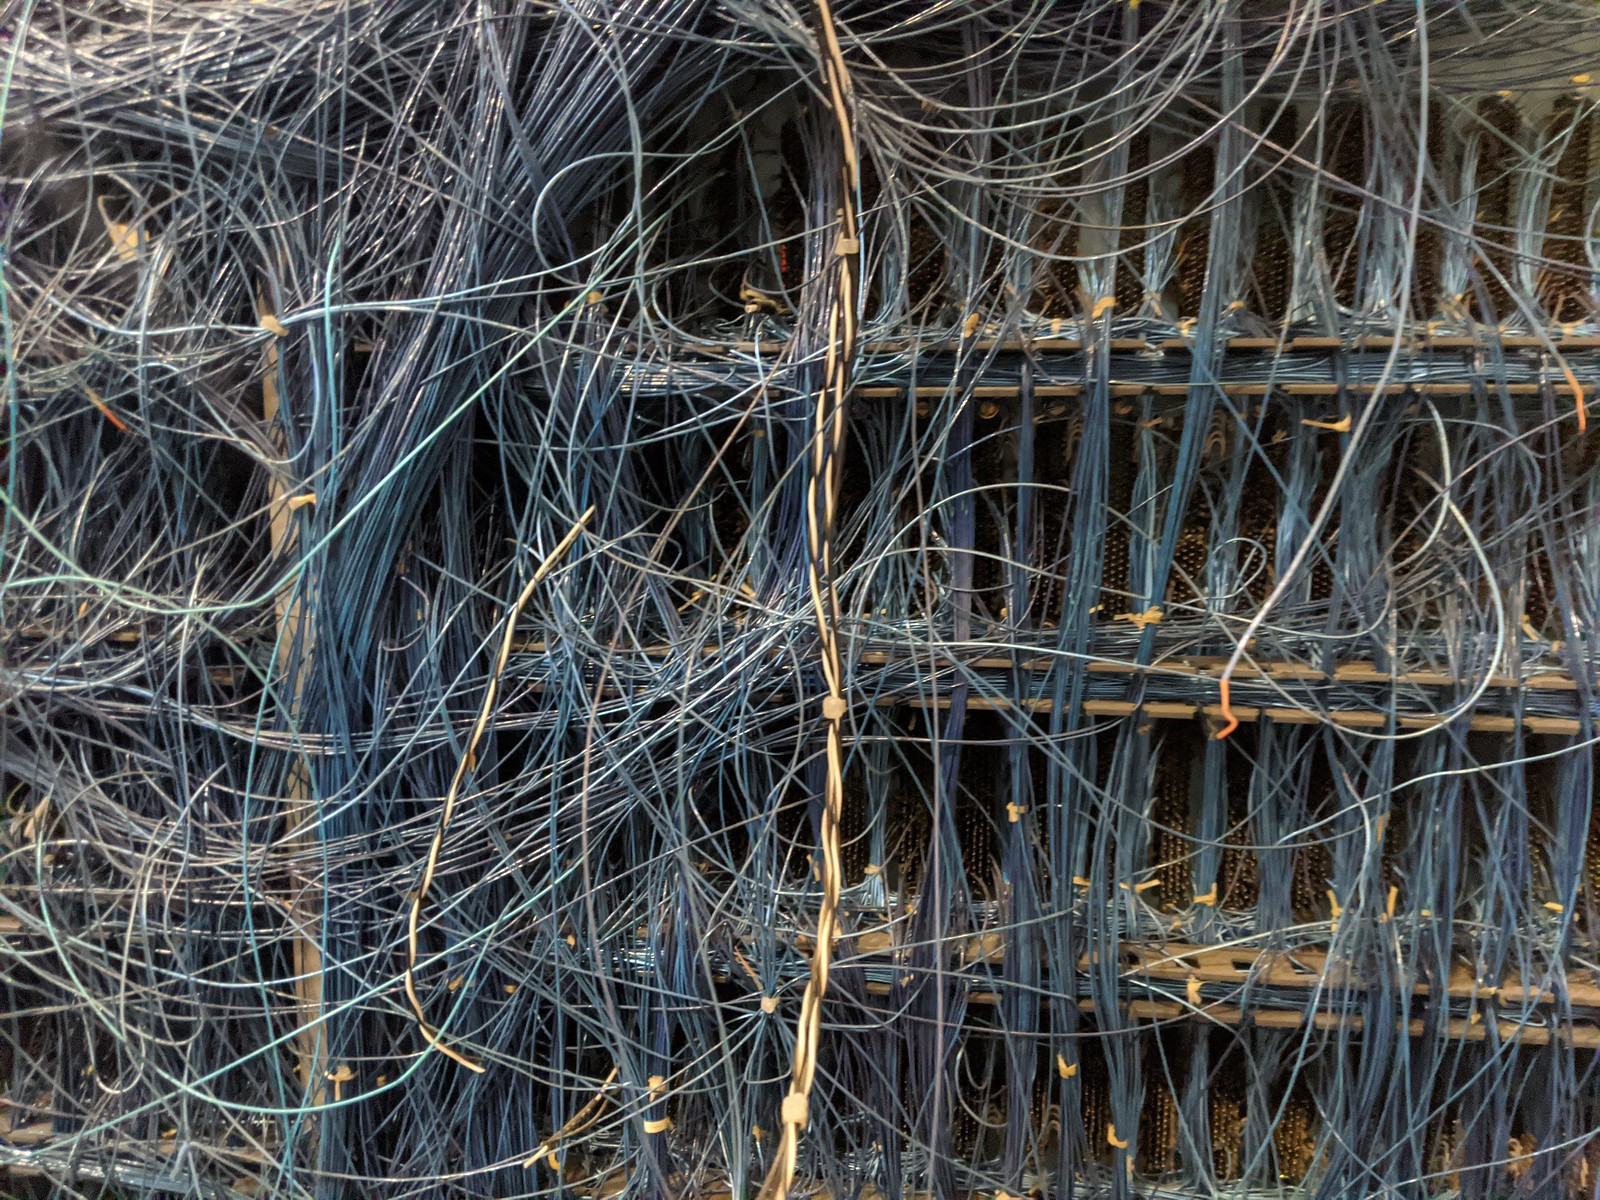 The complex, hand-wired backplane of an electromechanical supercomputer at the Computer History Museum boneyard; it is an impossible tangle of wires joining various subassemblies.